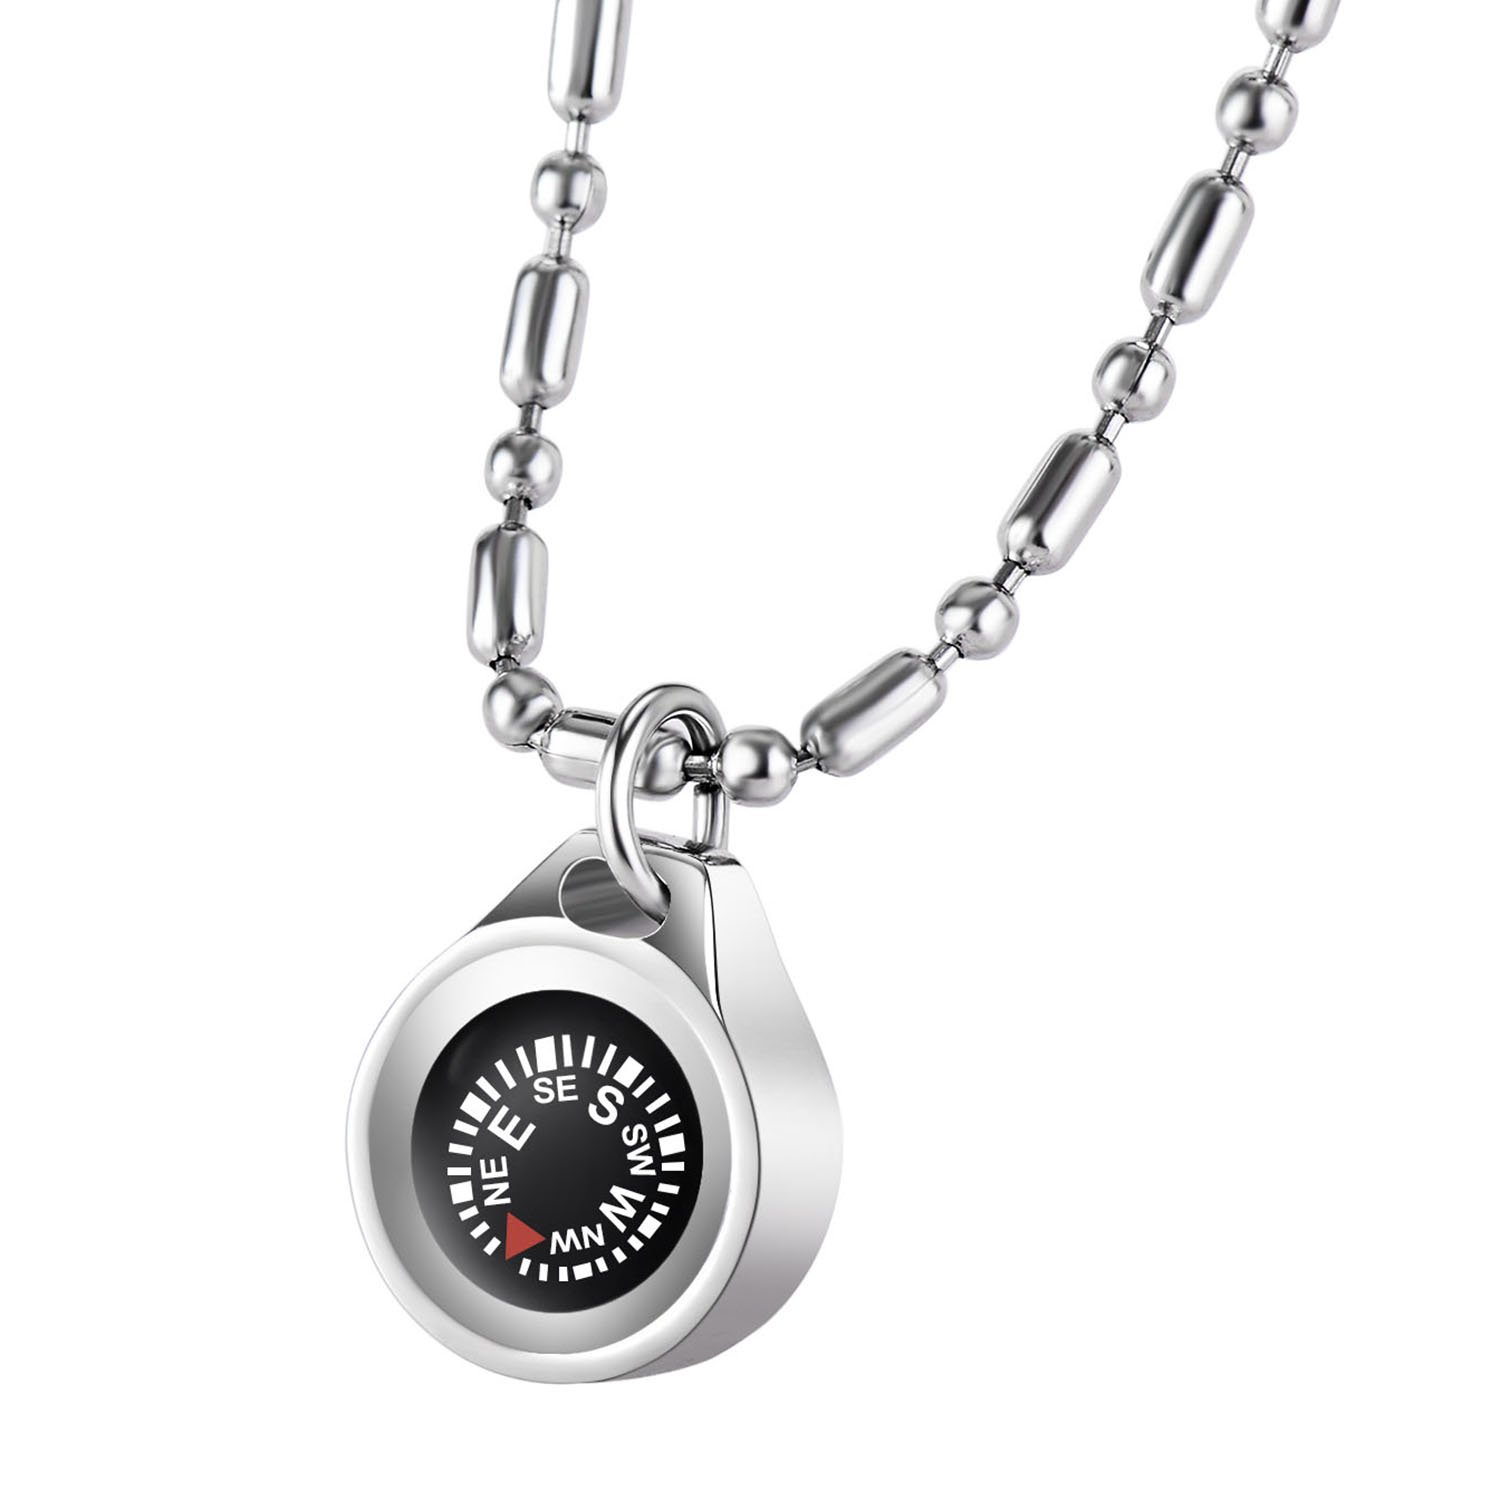 DAYHAO Navigation Compass Necklace, Waterproof Compass Outdoor Gift for Outdoorsman, Gift for Hikers, Gift for Campers, Luxurious Packaging, Stylish & Practical, Hiking Gift, Camping Gift by DAYHAO (Image #1)